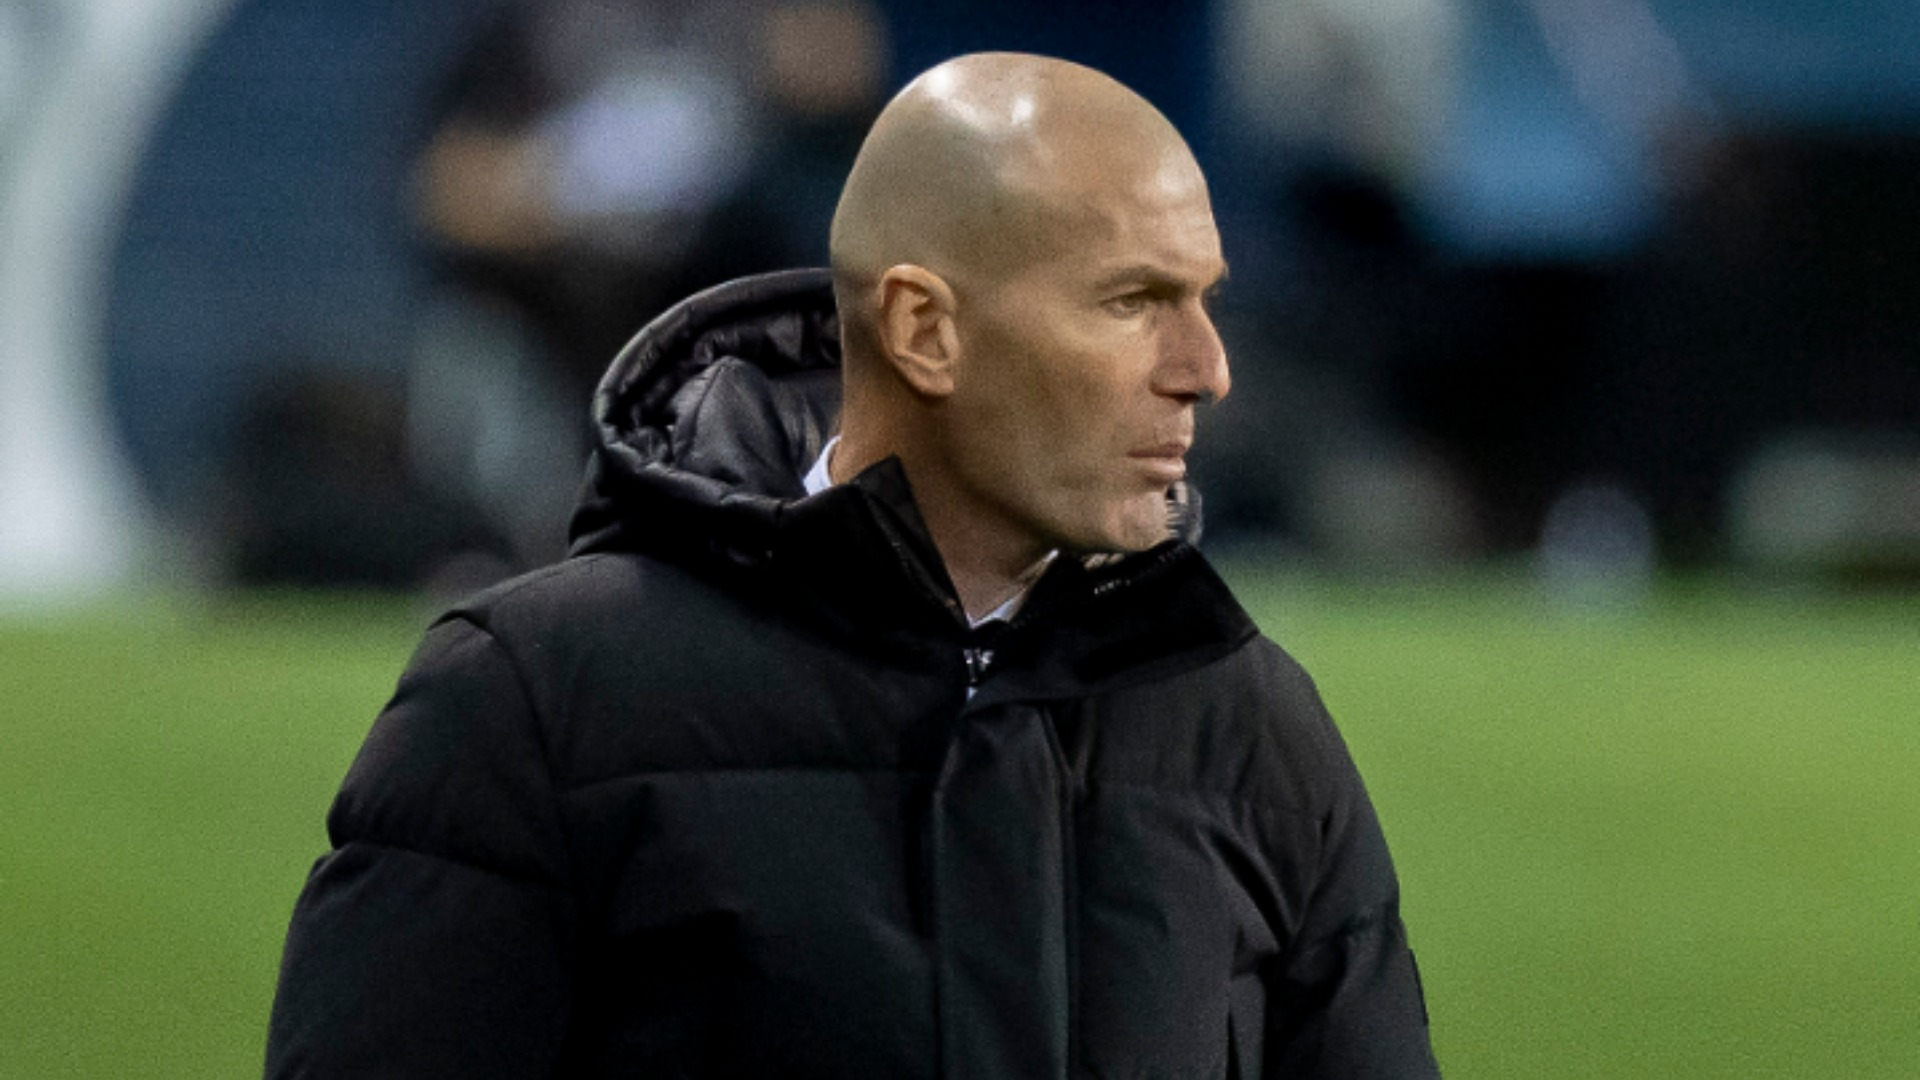 Real Madrid have fallen at the last 16 in the previous two Champions League seasons and Zinedine Zidane knows Atalanta present a danger.